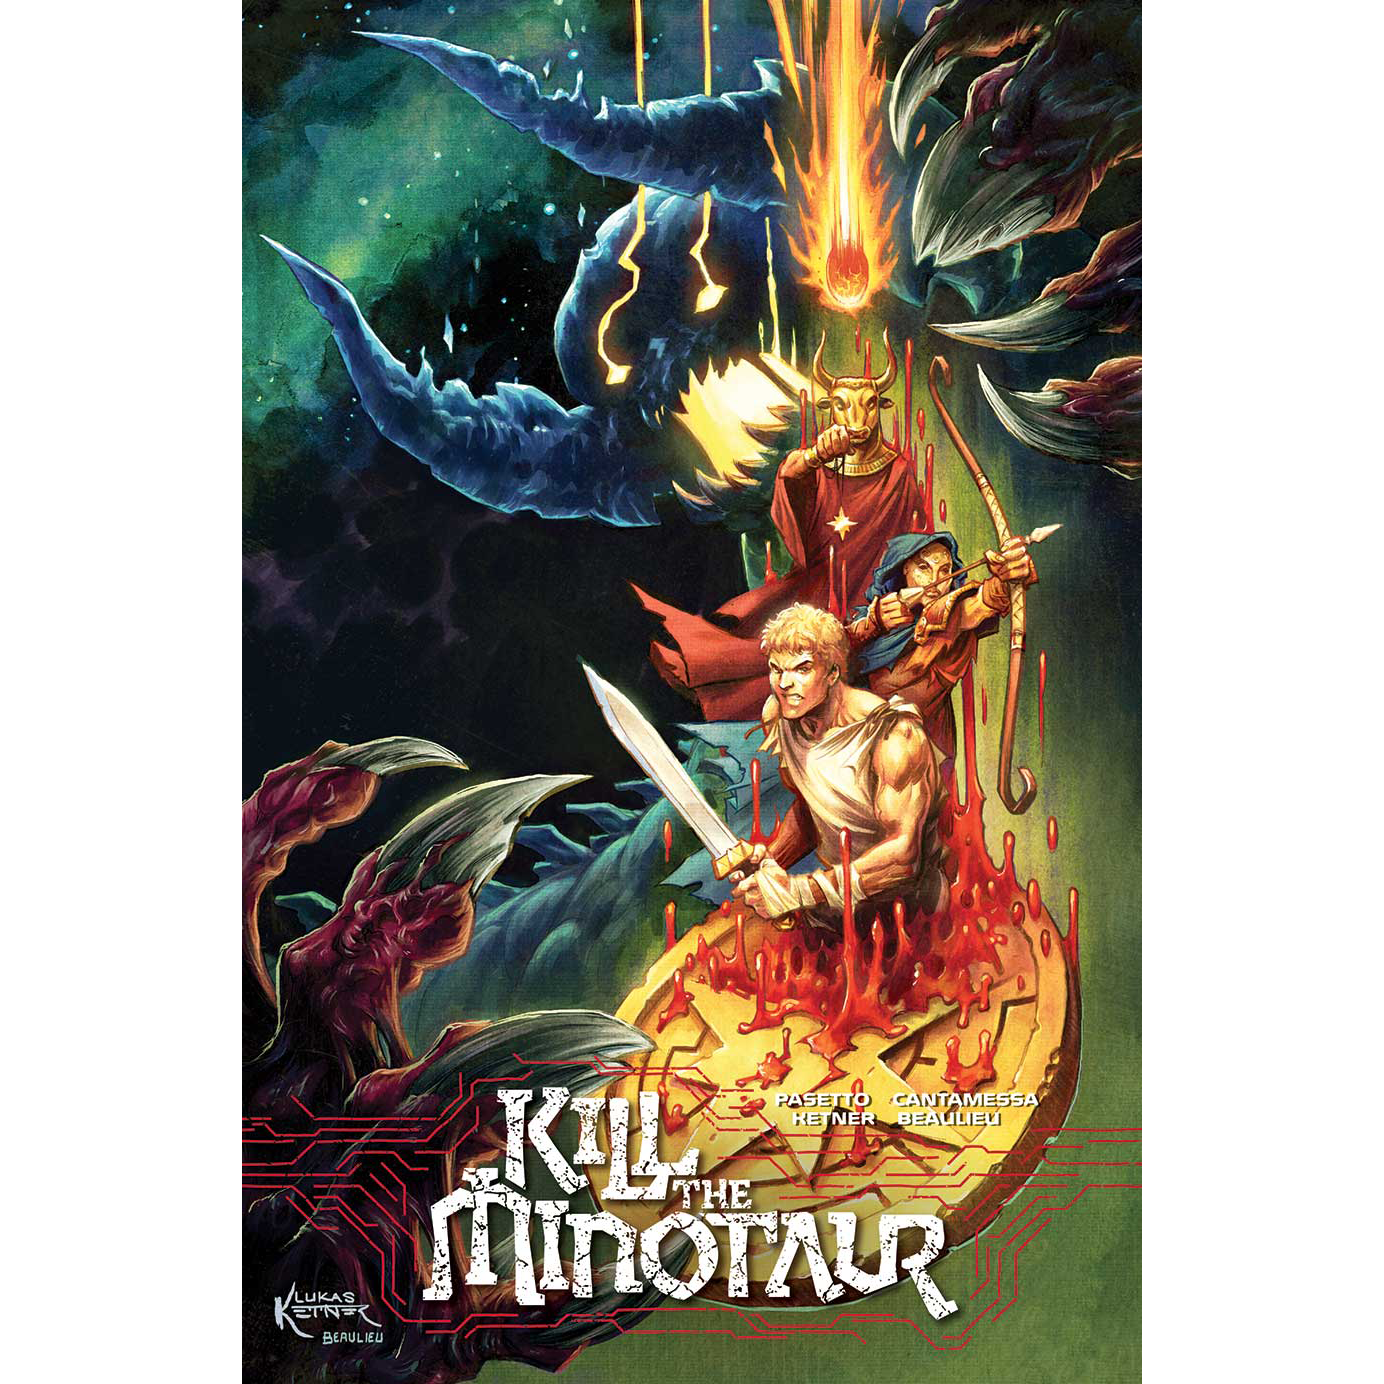 KILL THE MINOTAUR #2 SDCC 2017 Variant